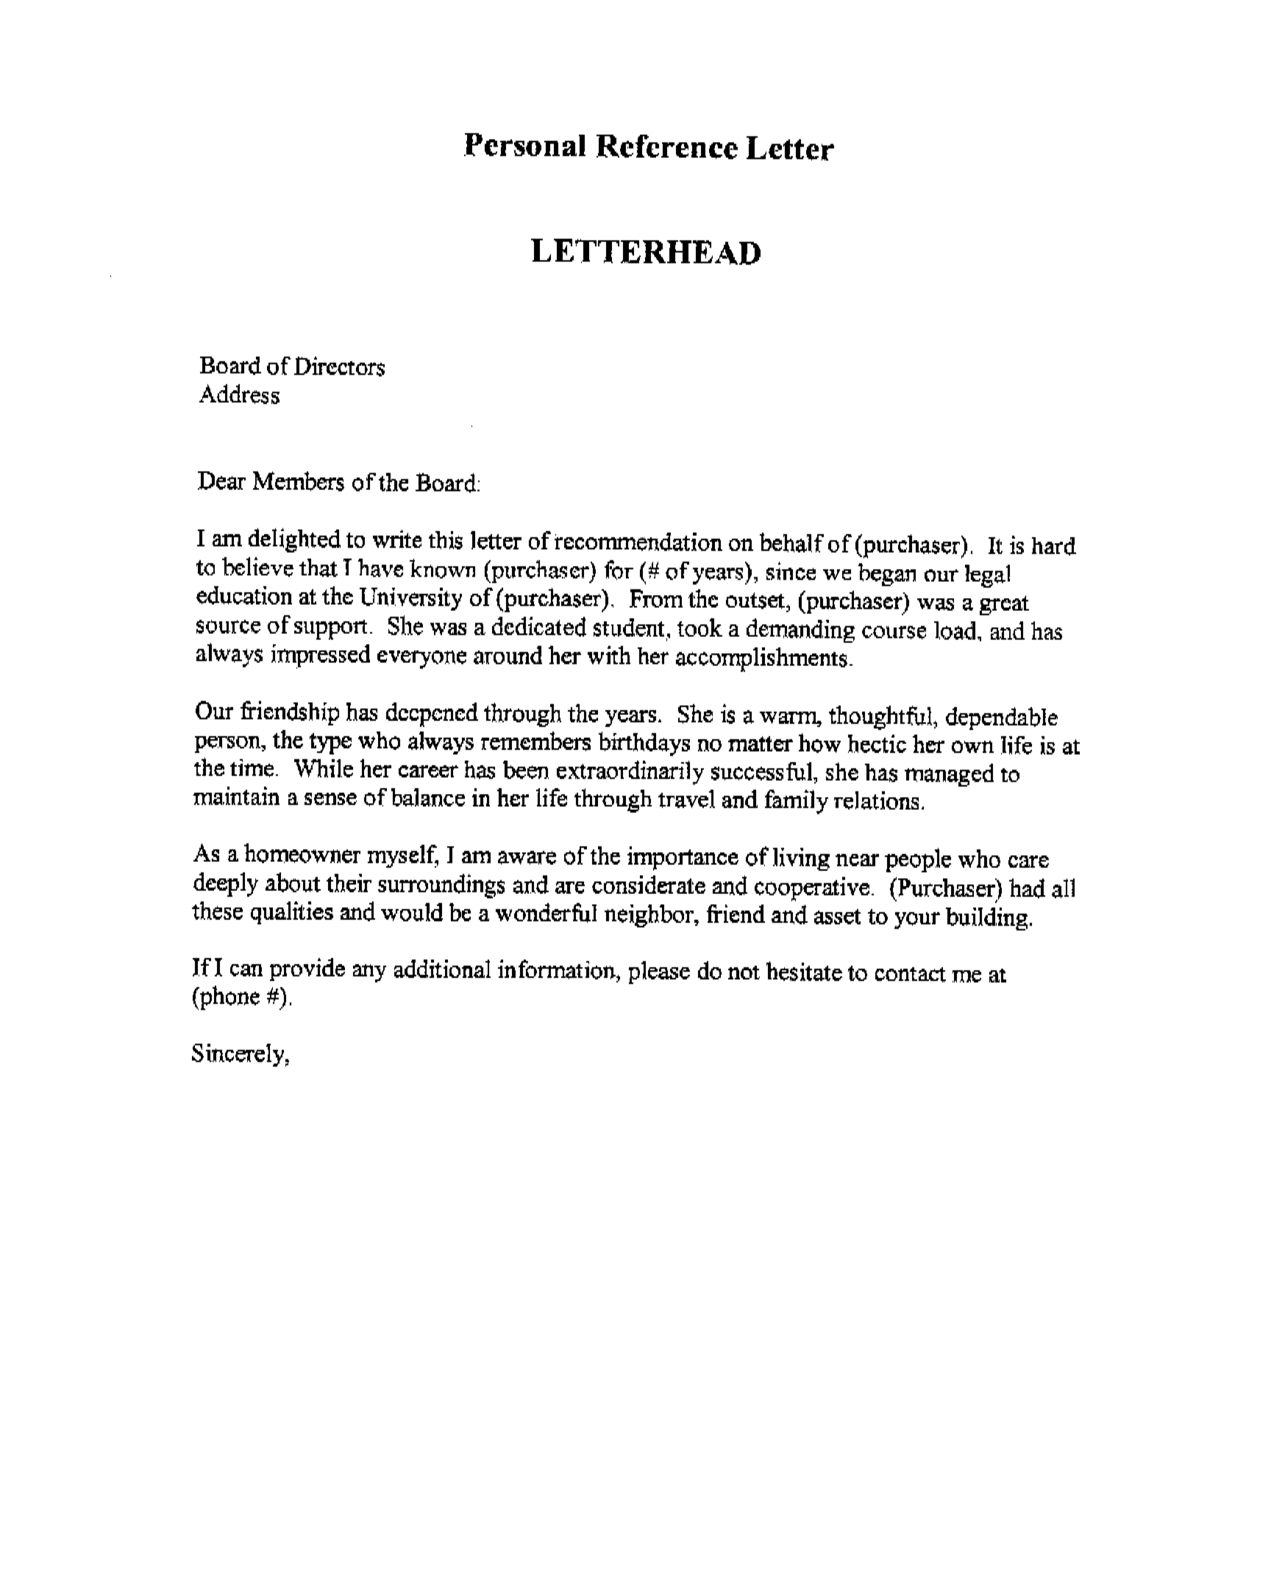 Professional recommendation letter this is an example of a professional recommendation letter this is an example of a professional recommendation written for an employee who is relocating thecheapjerseys Gallery